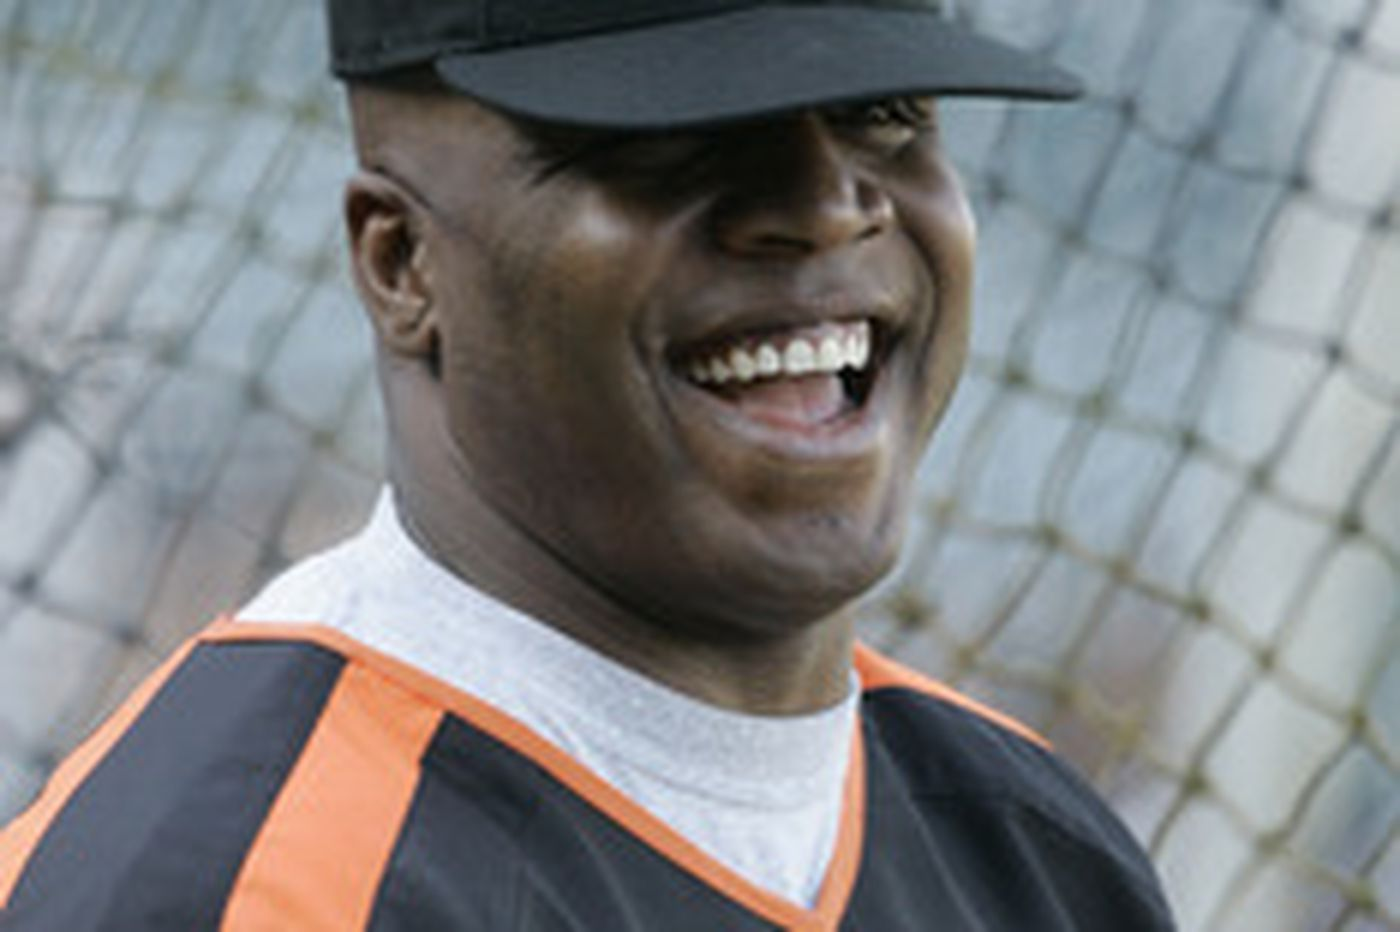 Sam Donnellon | BARRY BONDS: Let's just get this over with quickly